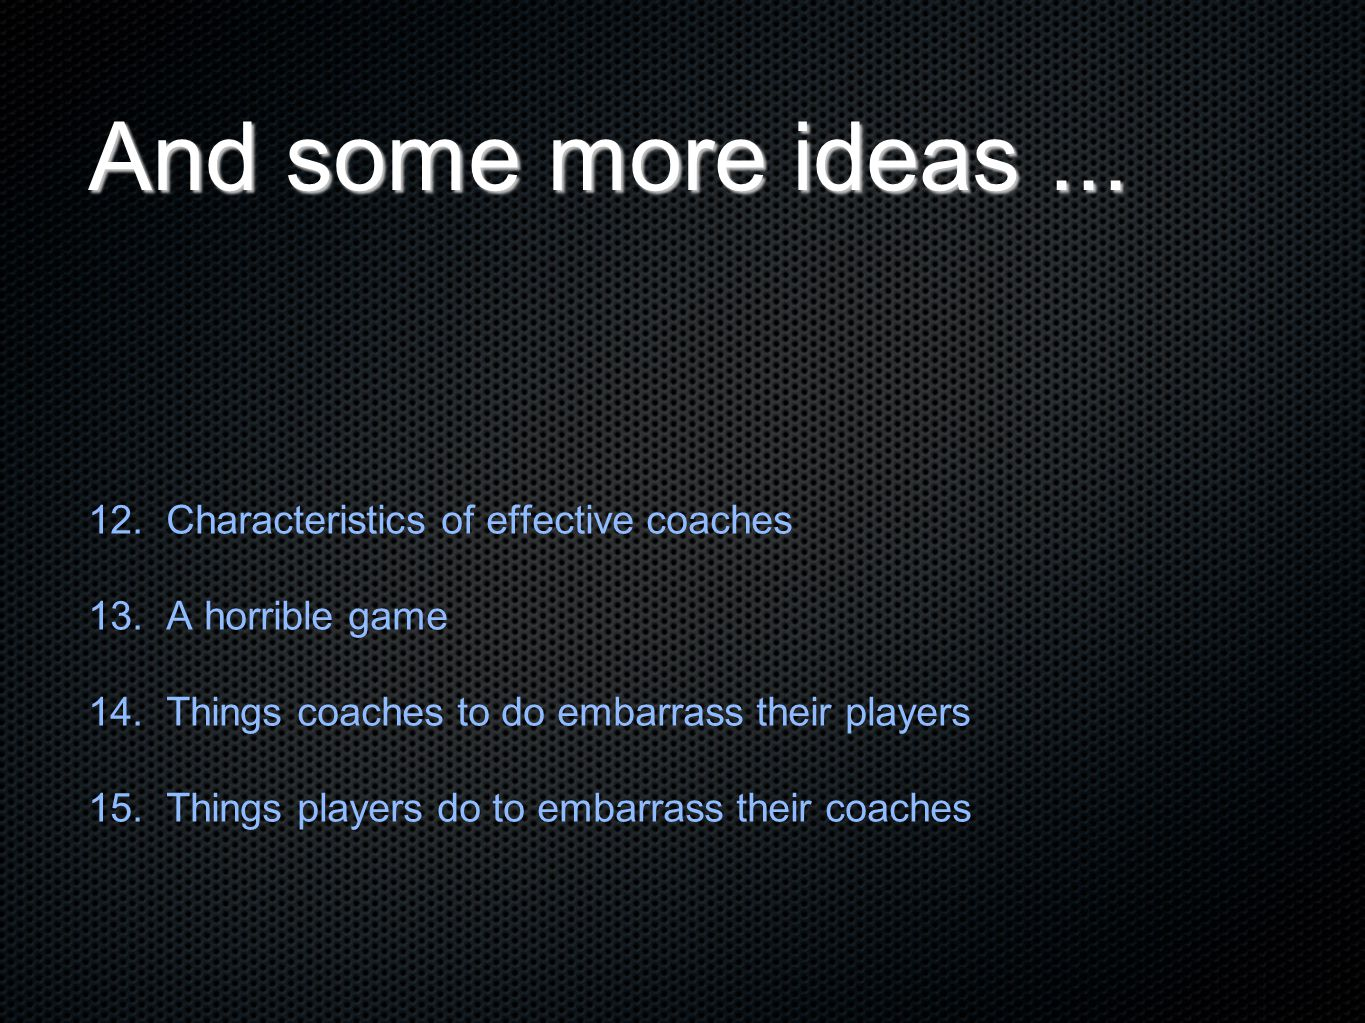 And some more ideas... 12. Characteristics of effective coaches 13. A horrible game 14. Things coaches to do embarrass their players 15. Things player